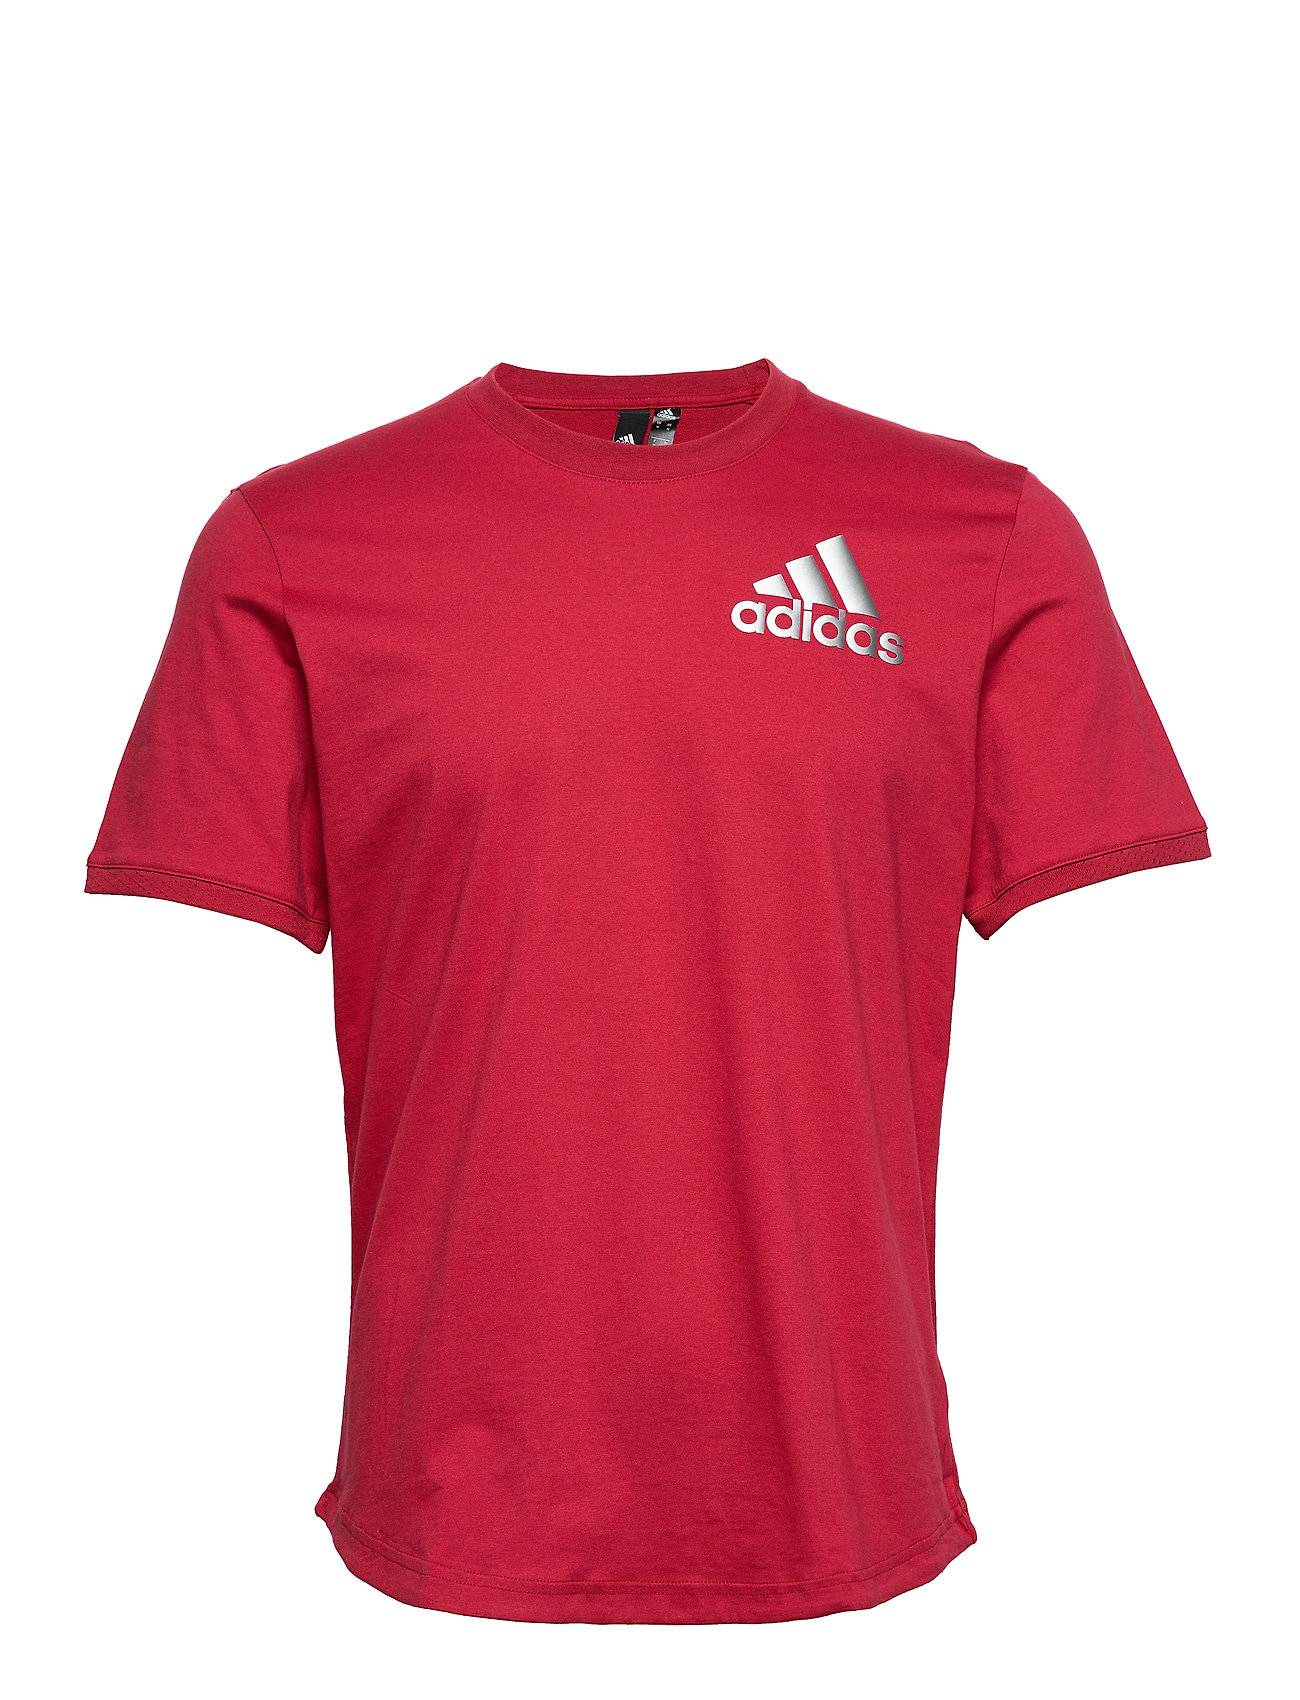 Image of adidas Performance M Sid Tee Ct T-shirts Short-sleeved Punainen Adidas Performance